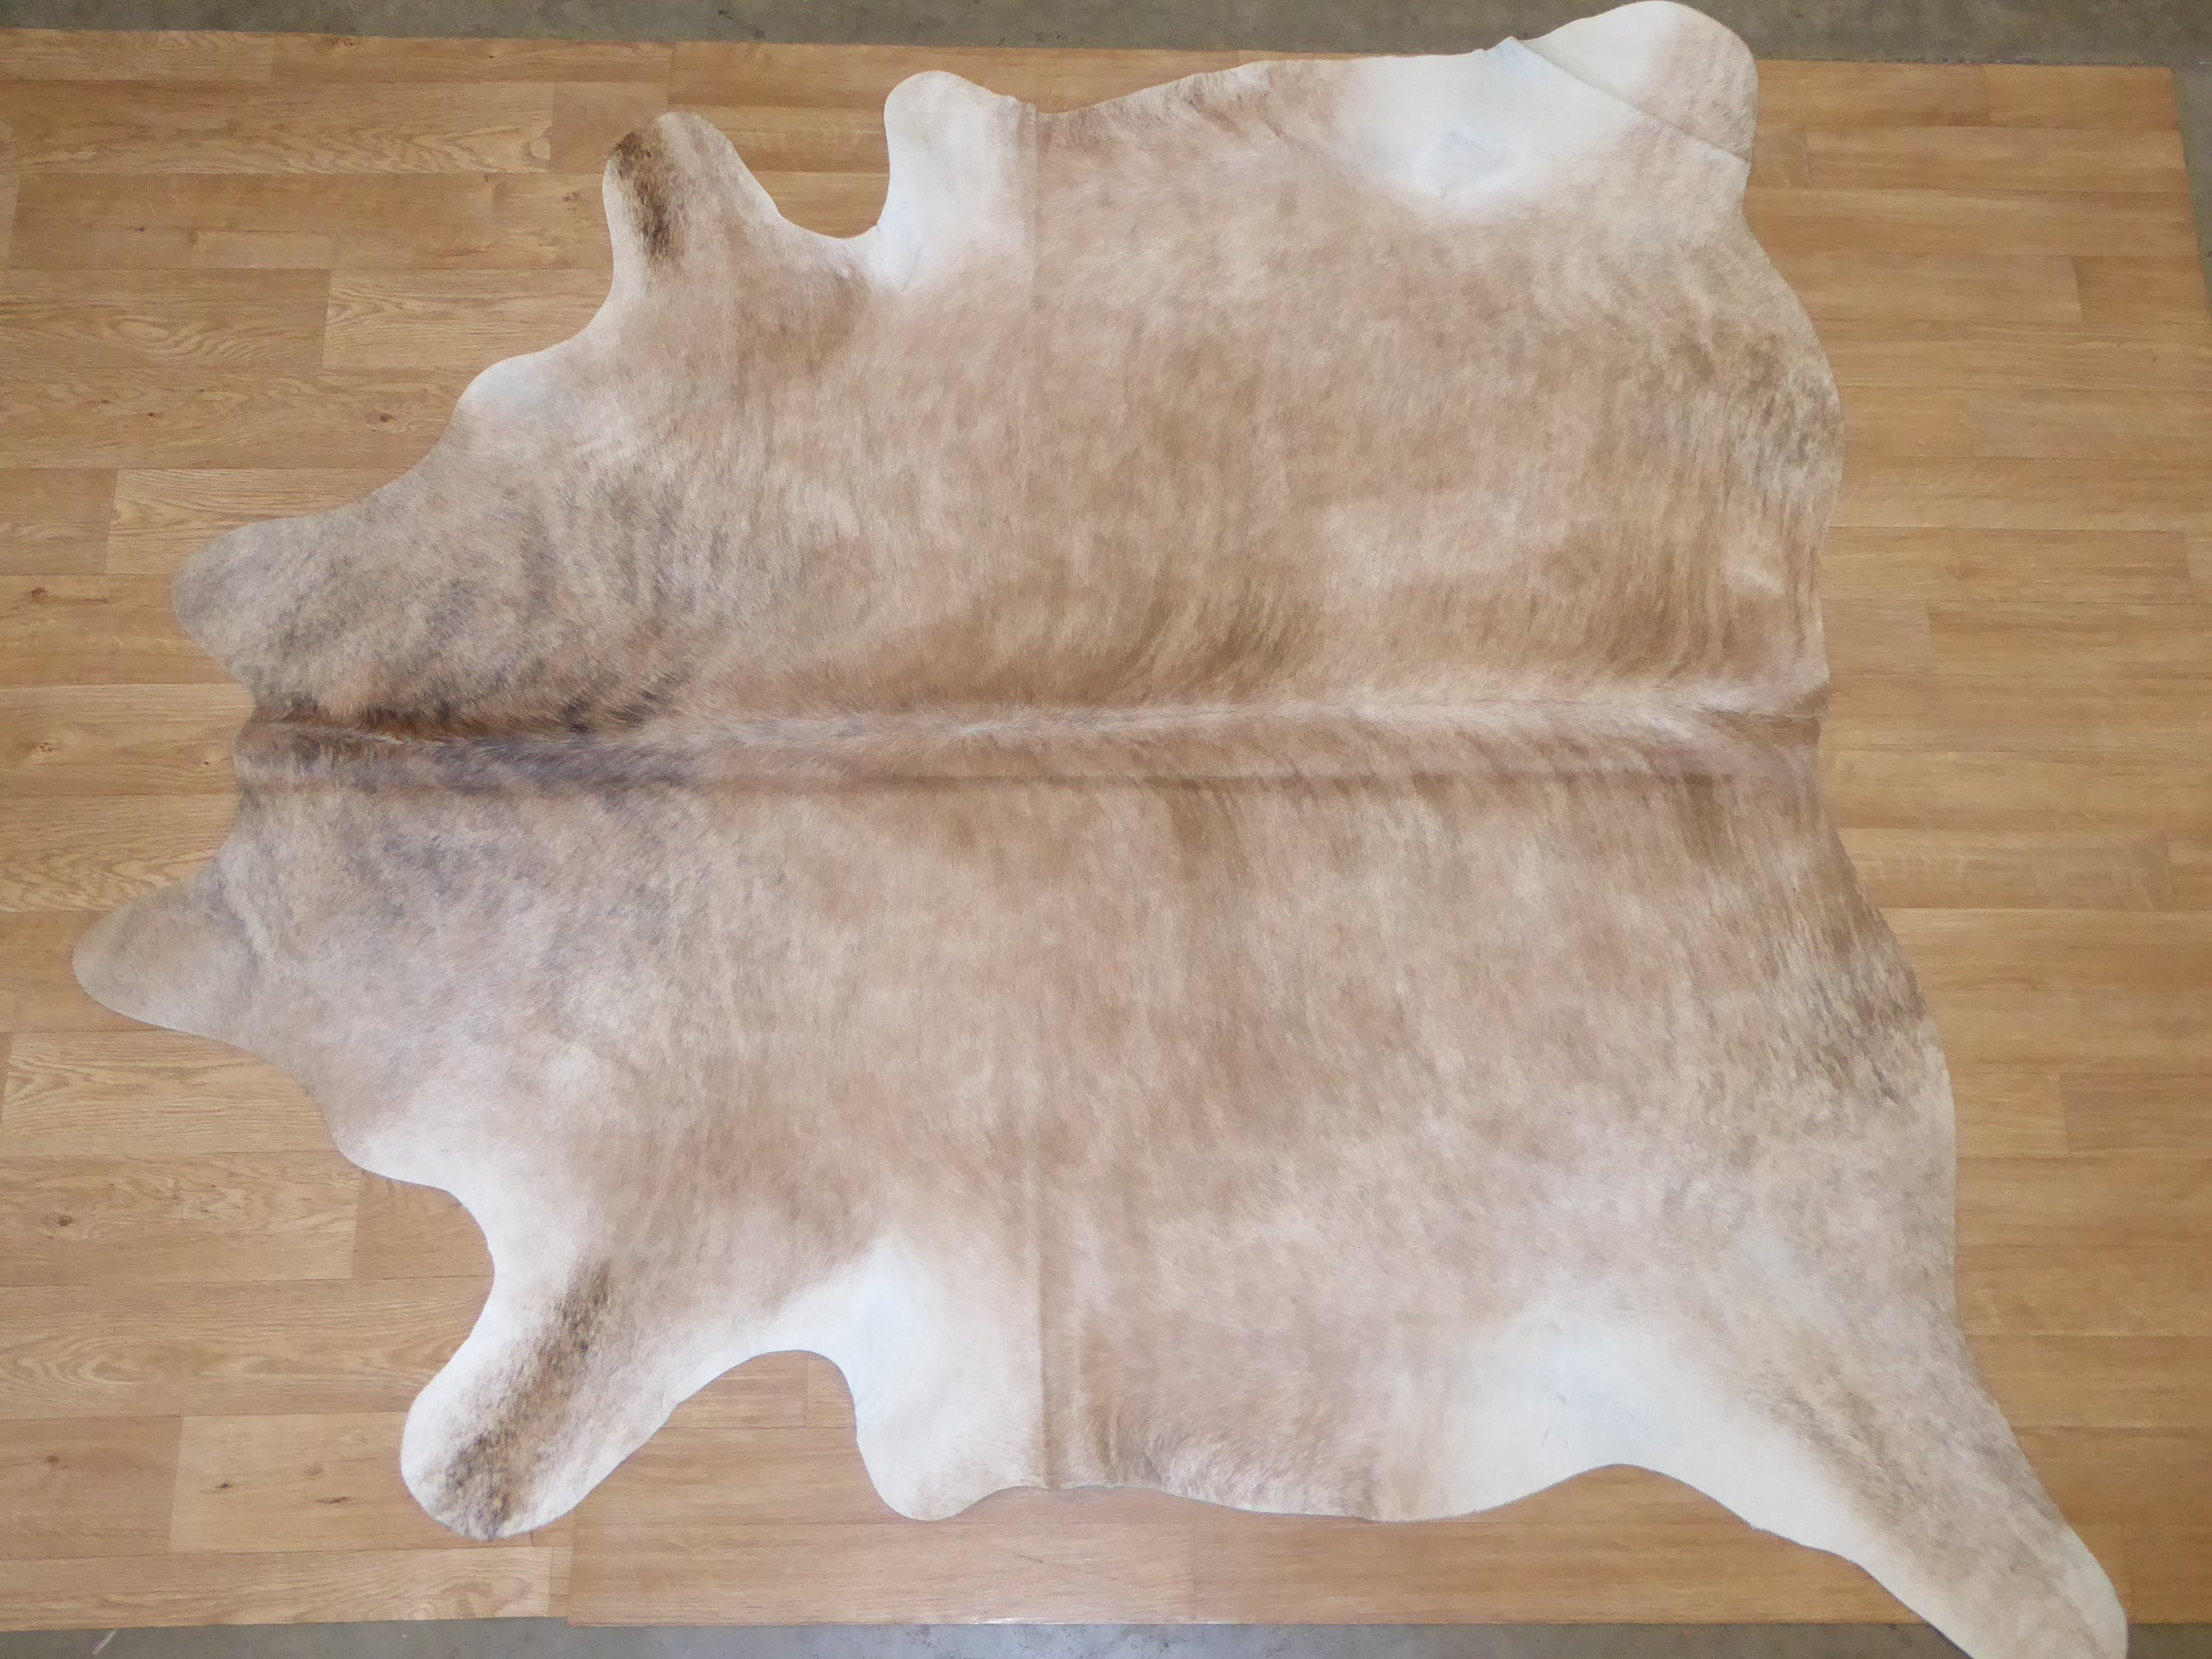 Natural Hair On Cow Hide : This Hide Is Perfect For Wall Hanging, Leather Rugs, Leather Bags & Leather Accessories (pic code 1020057)